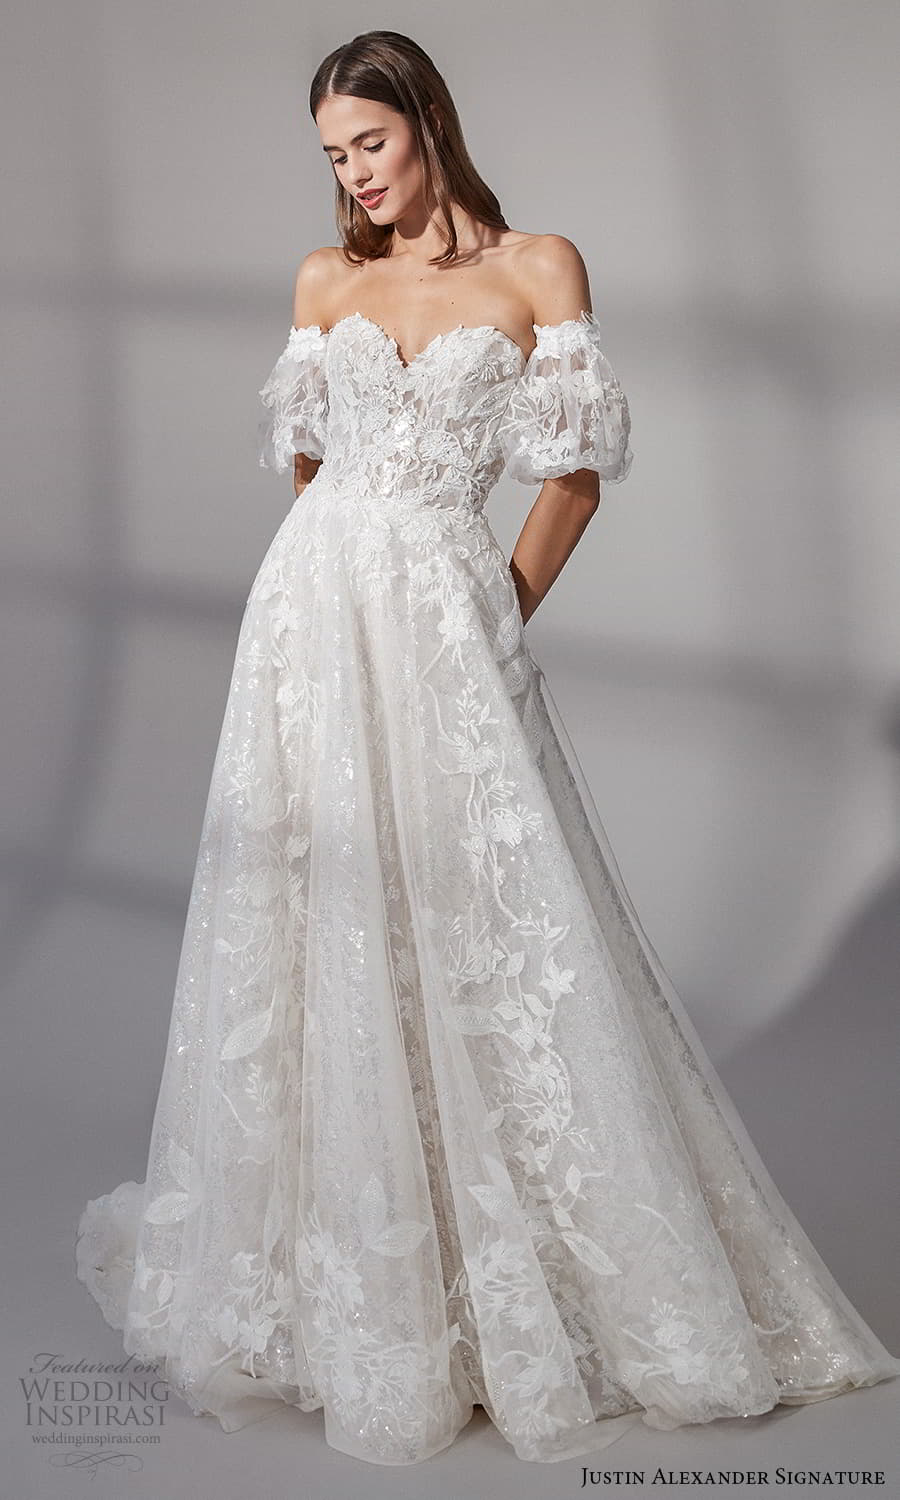 justin alexander signature fall 2021 bridal detached short puff sleeves strapless sweetheart neckline fully embellished a line ball gown wedding dress chapel train (14) mv